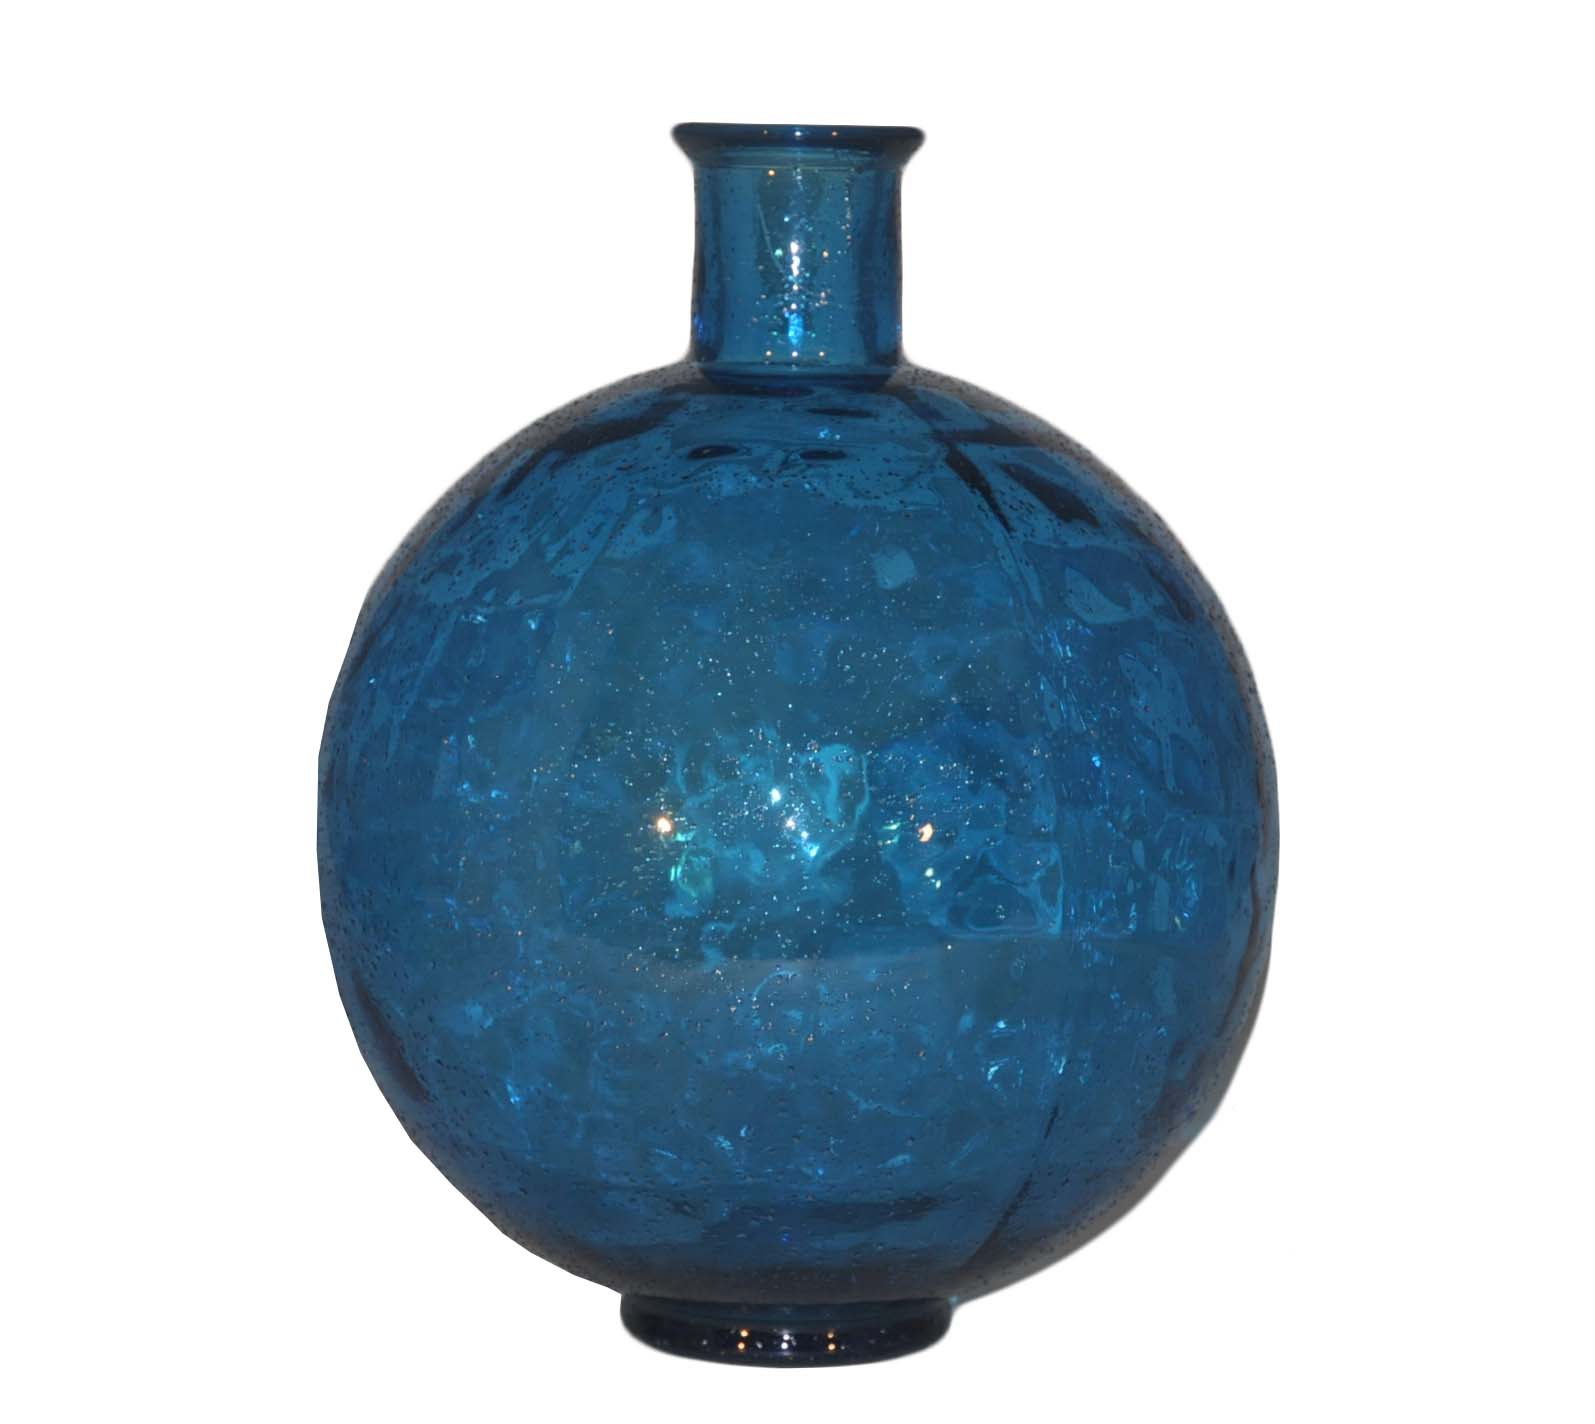 vase boule en verre bleu turquoise demeure et jardin. Black Bedroom Furniture Sets. Home Design Ideas